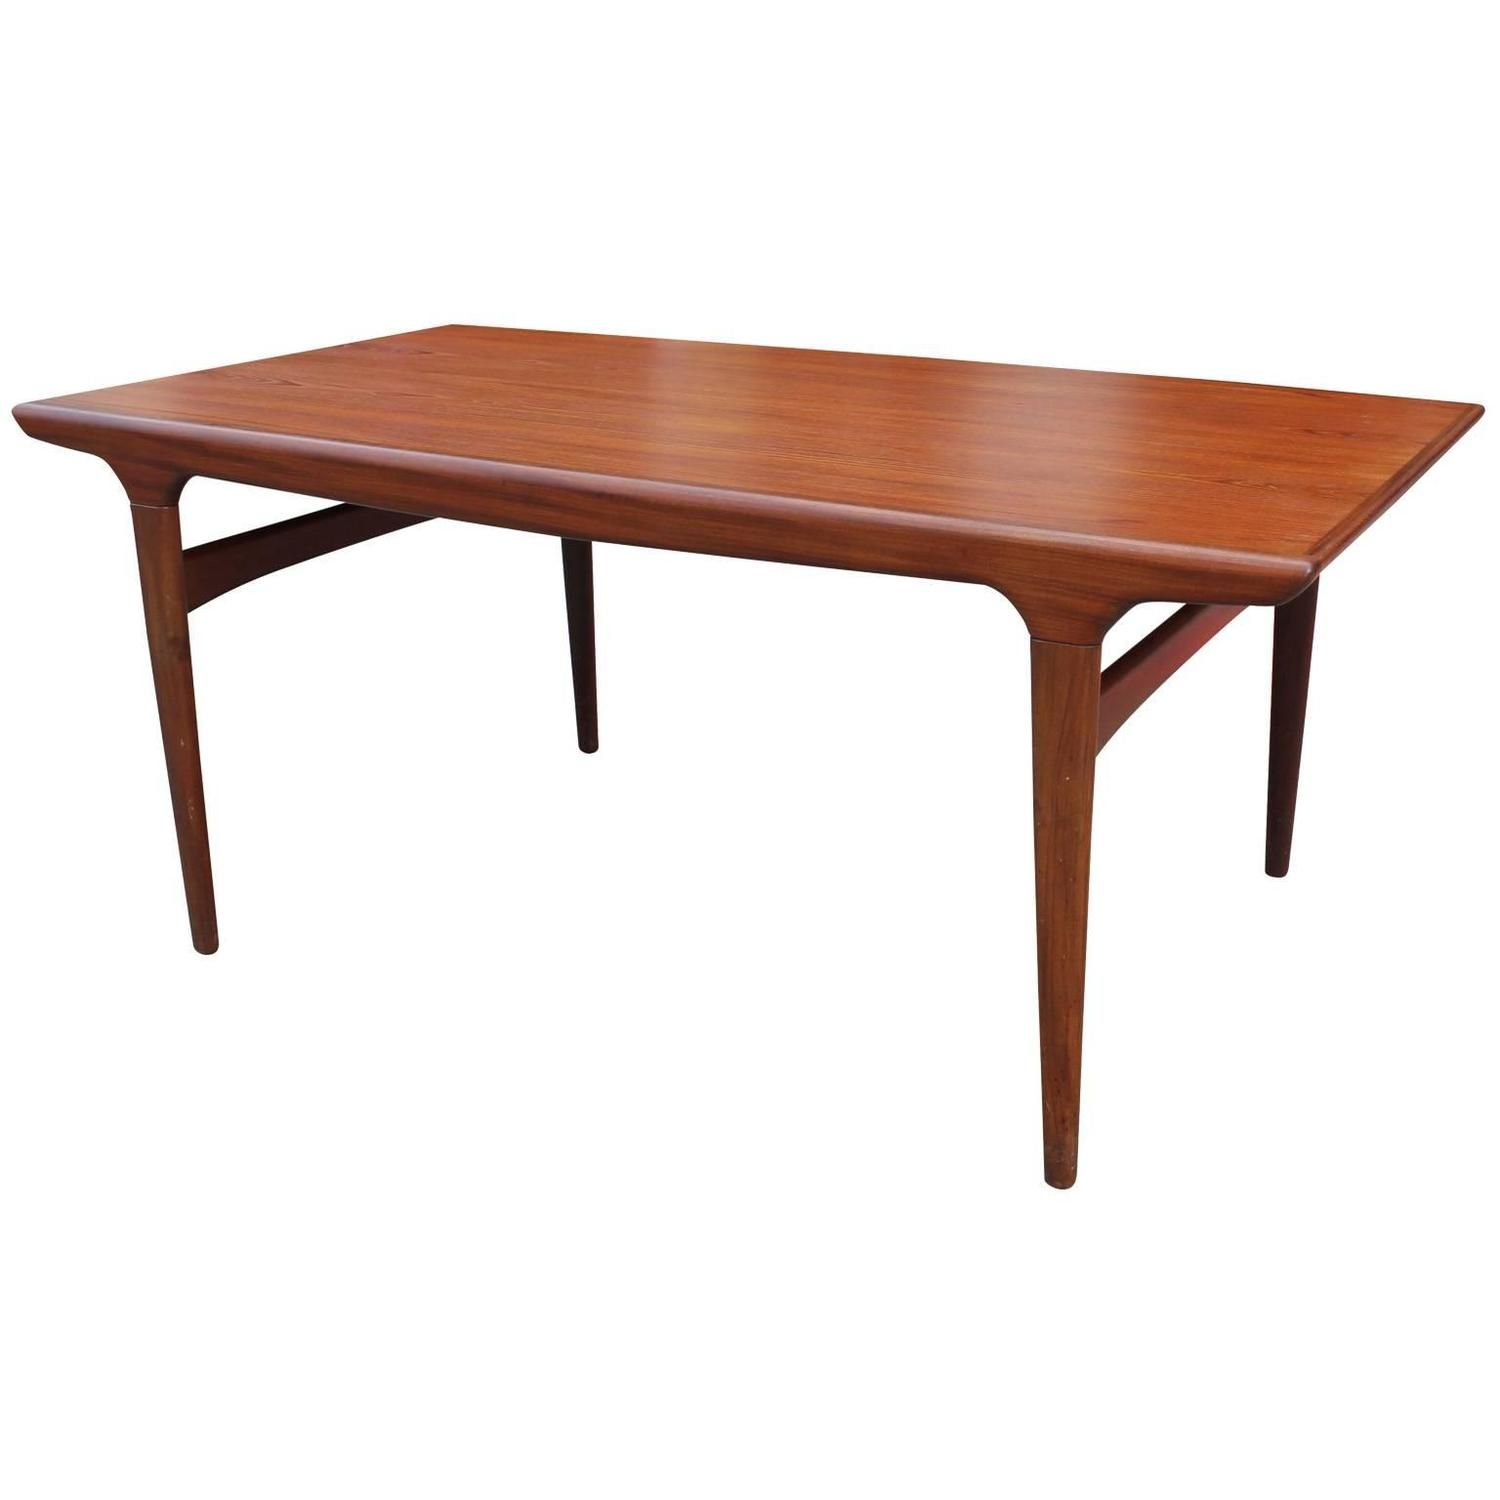 Elegant Danish Teak Dining Table With A Cantilevered Leaf  Teak Captivating Scandinavian Teak Dining Room Furniture Design Ideas